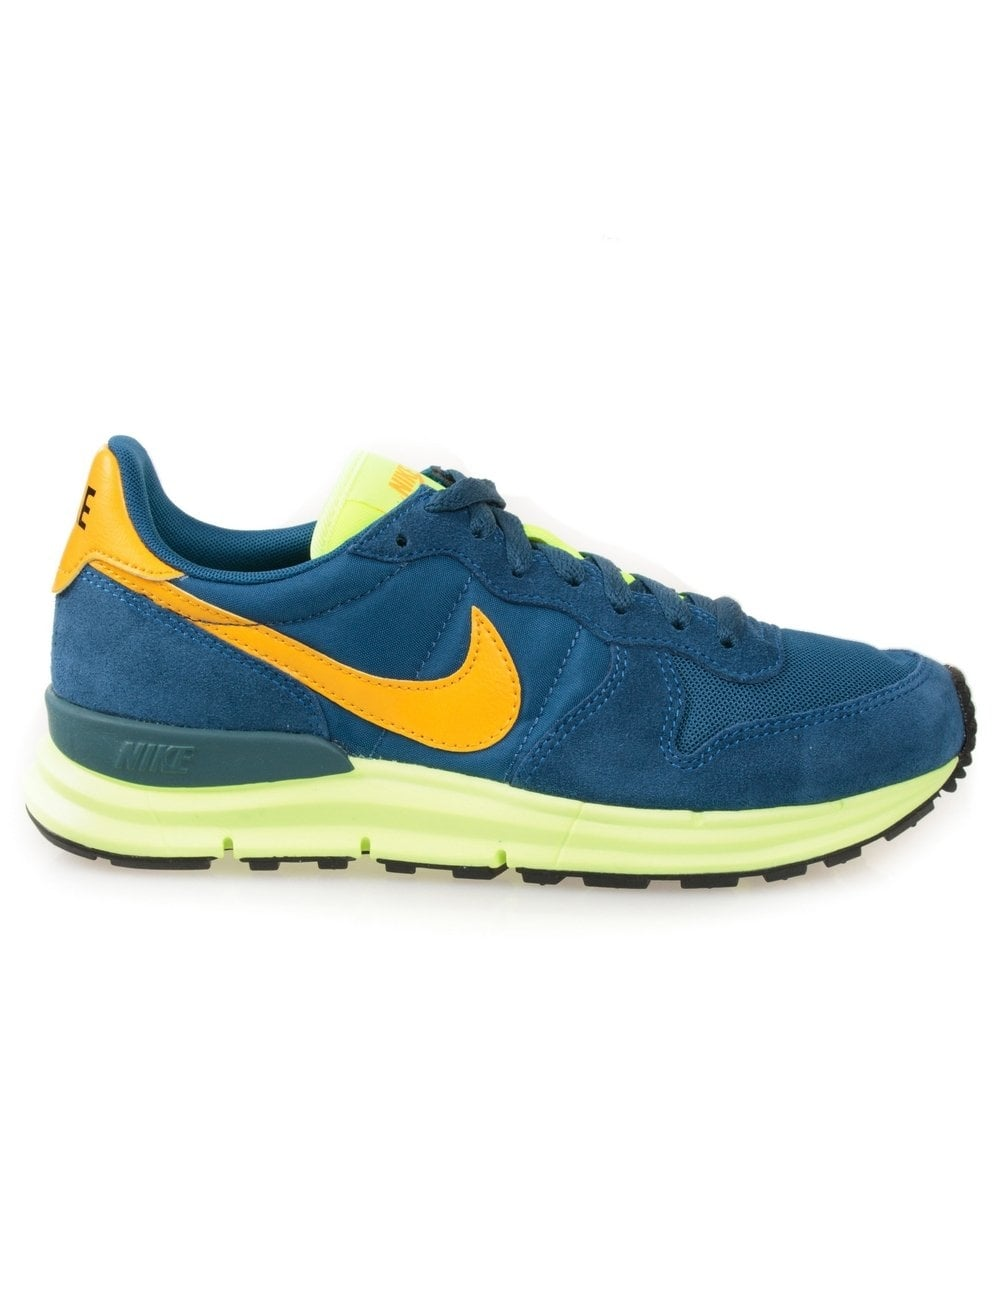 online retailer 8e707 1ac66 Lunar Internationalist - Court Blue